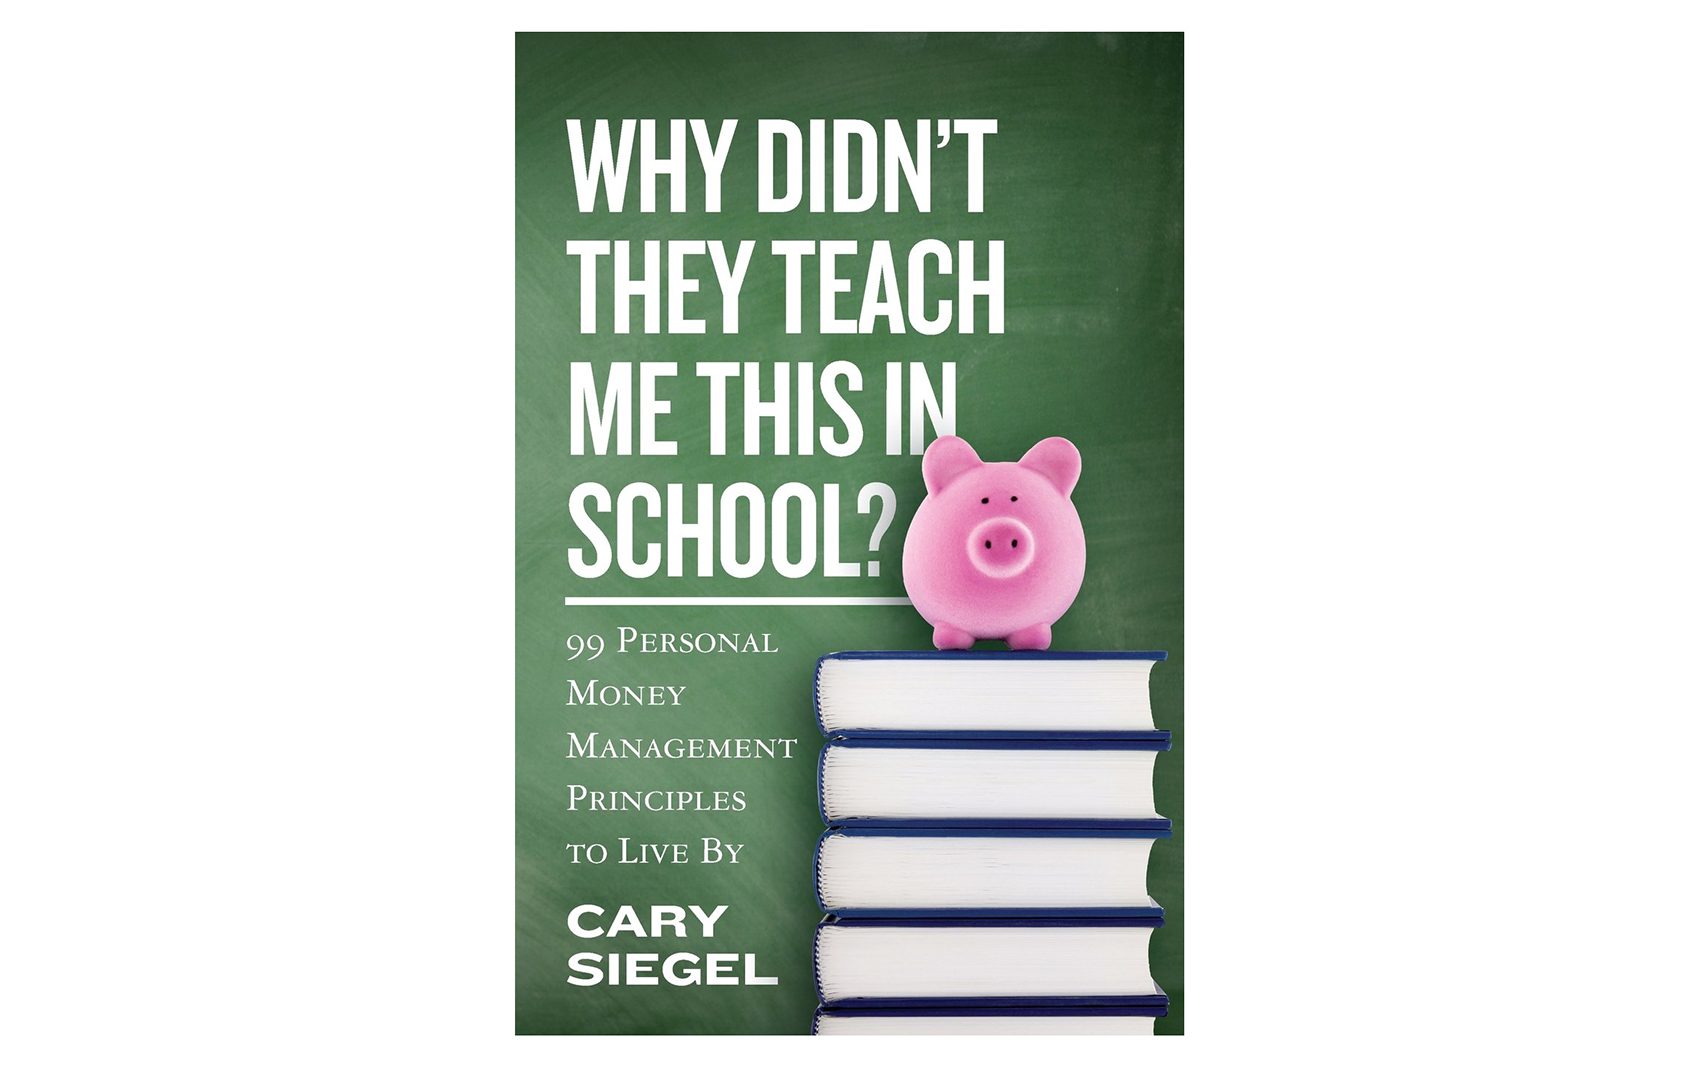 Why Didn't They Teach Me This in School?: 99 Personal Money Management Principles to Live By, by Cary Siegel